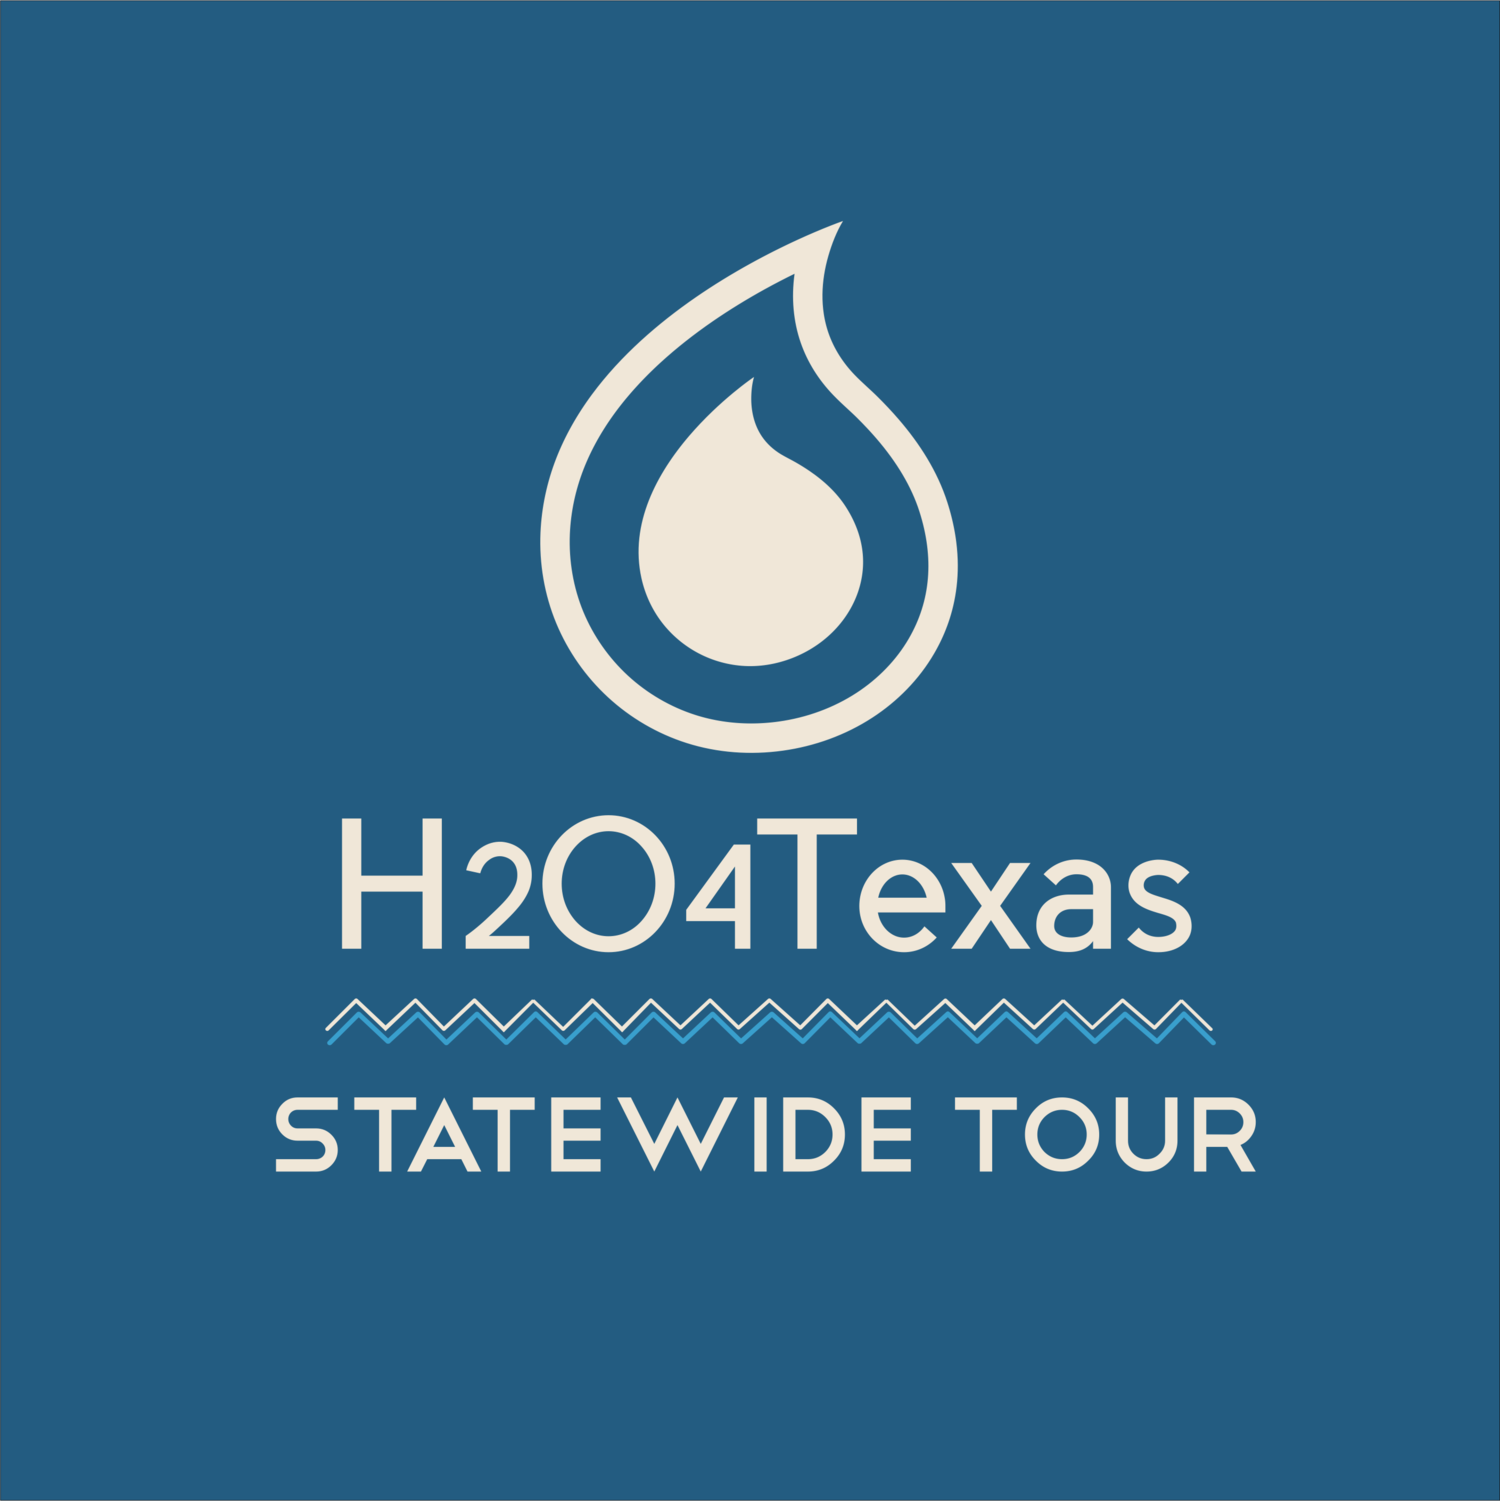 H204Texas Statewide Tour